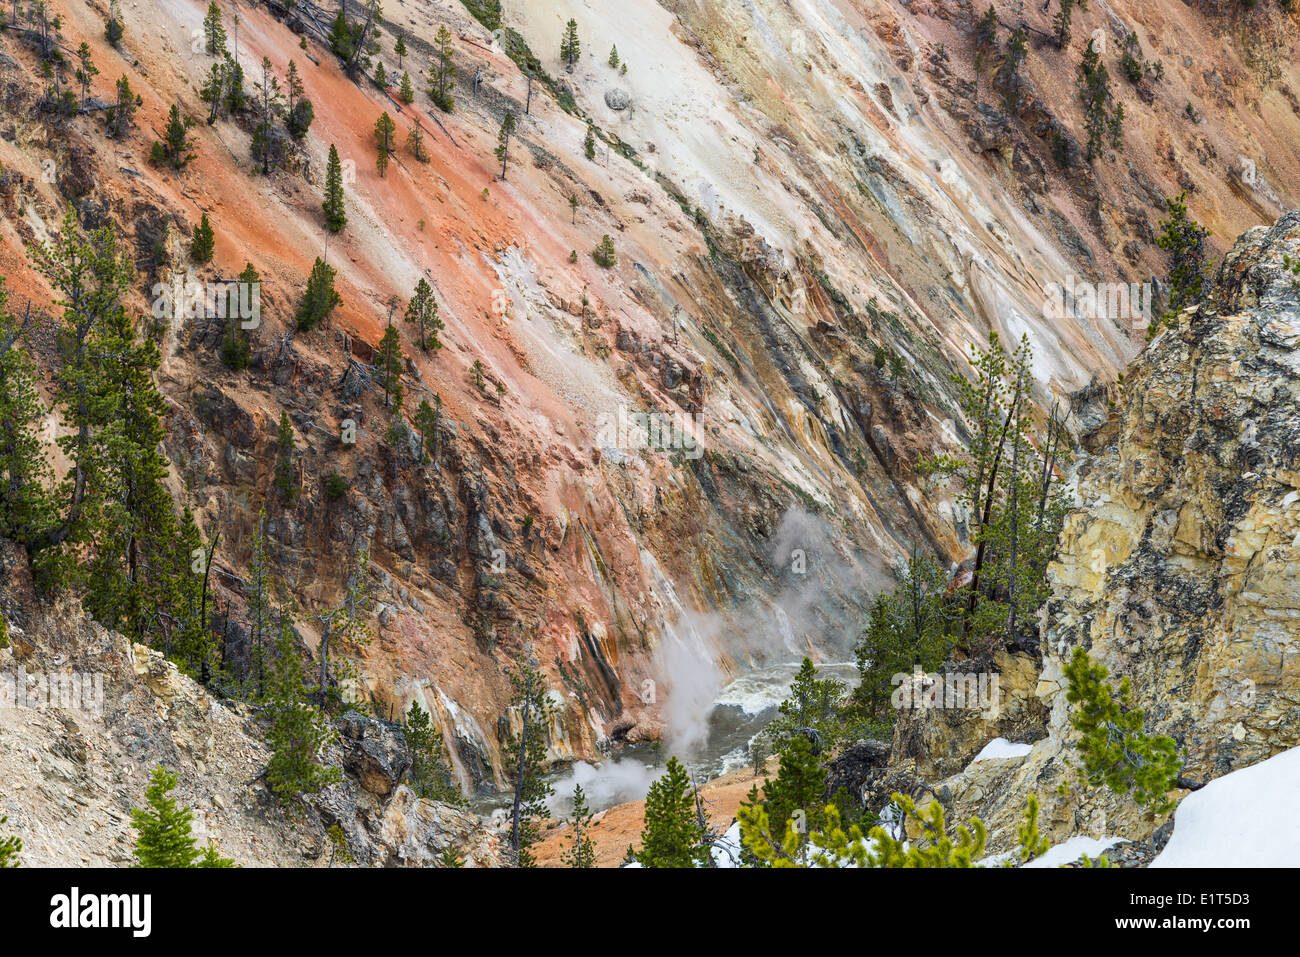 Steam vents at the Grand Canyon of the Yellowstone National Park, Wyoming, USA. - Stock Image